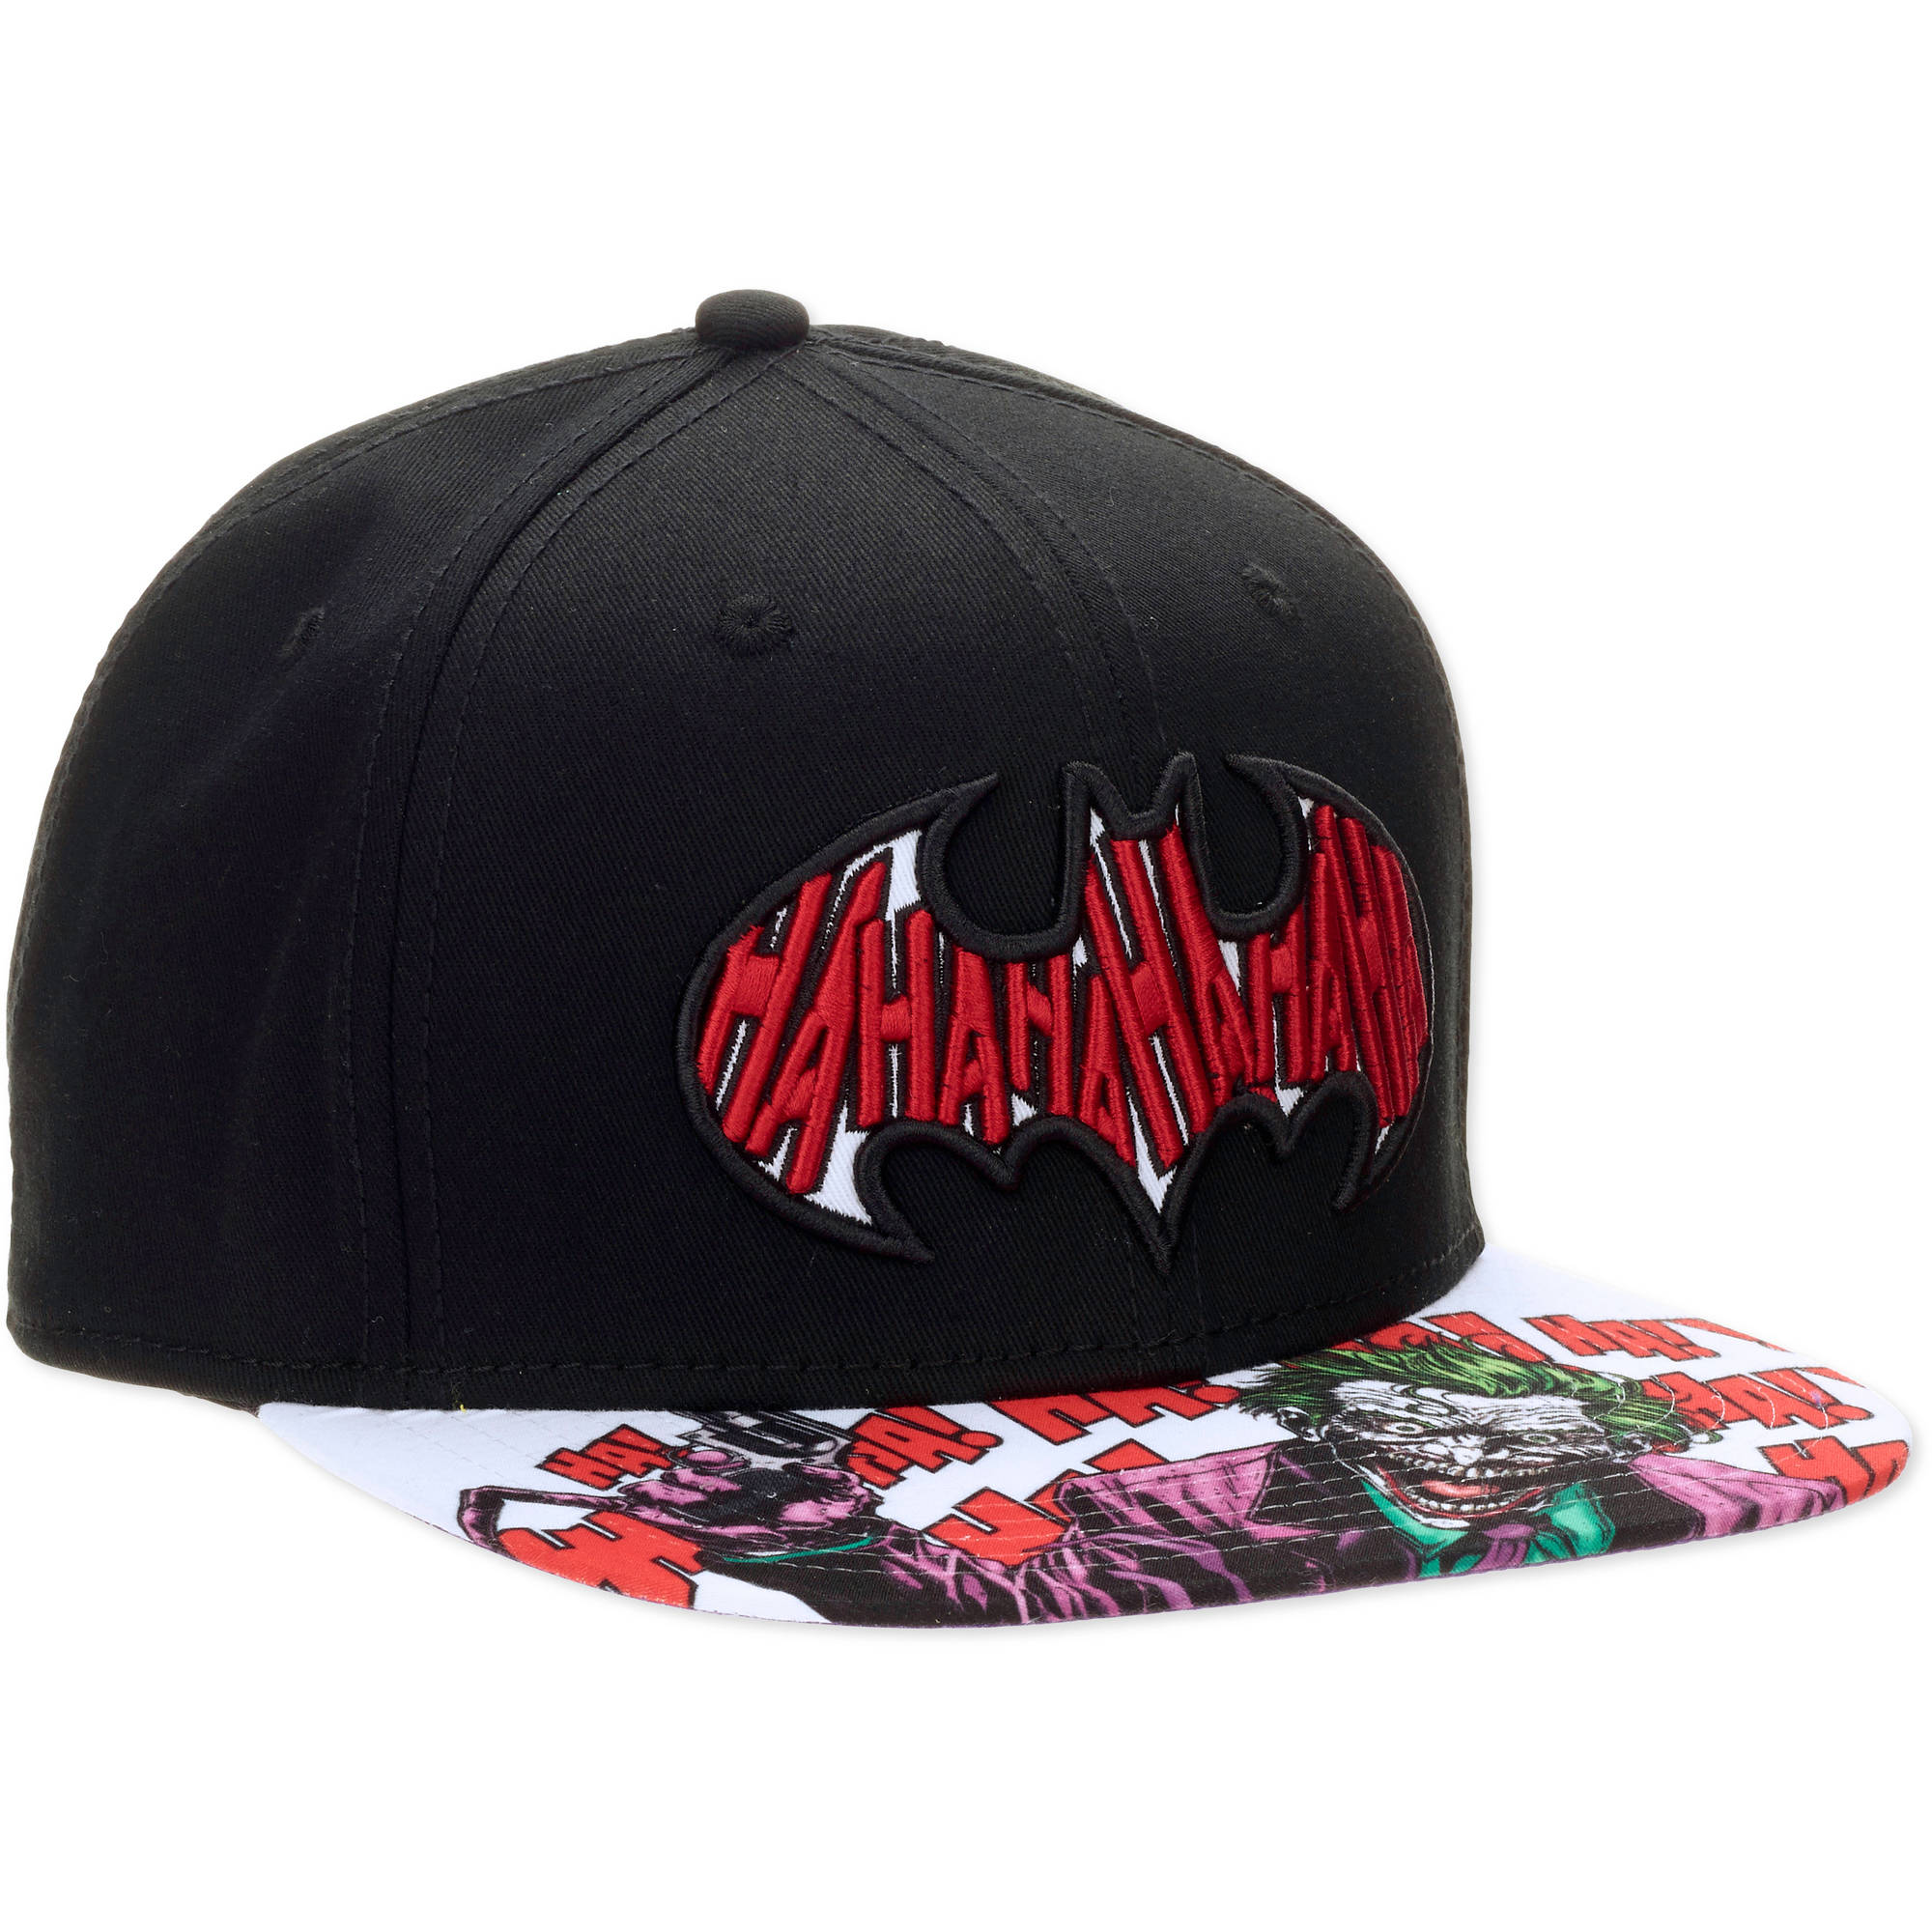 Batman Hahaha Fill Snapback Men's Hat